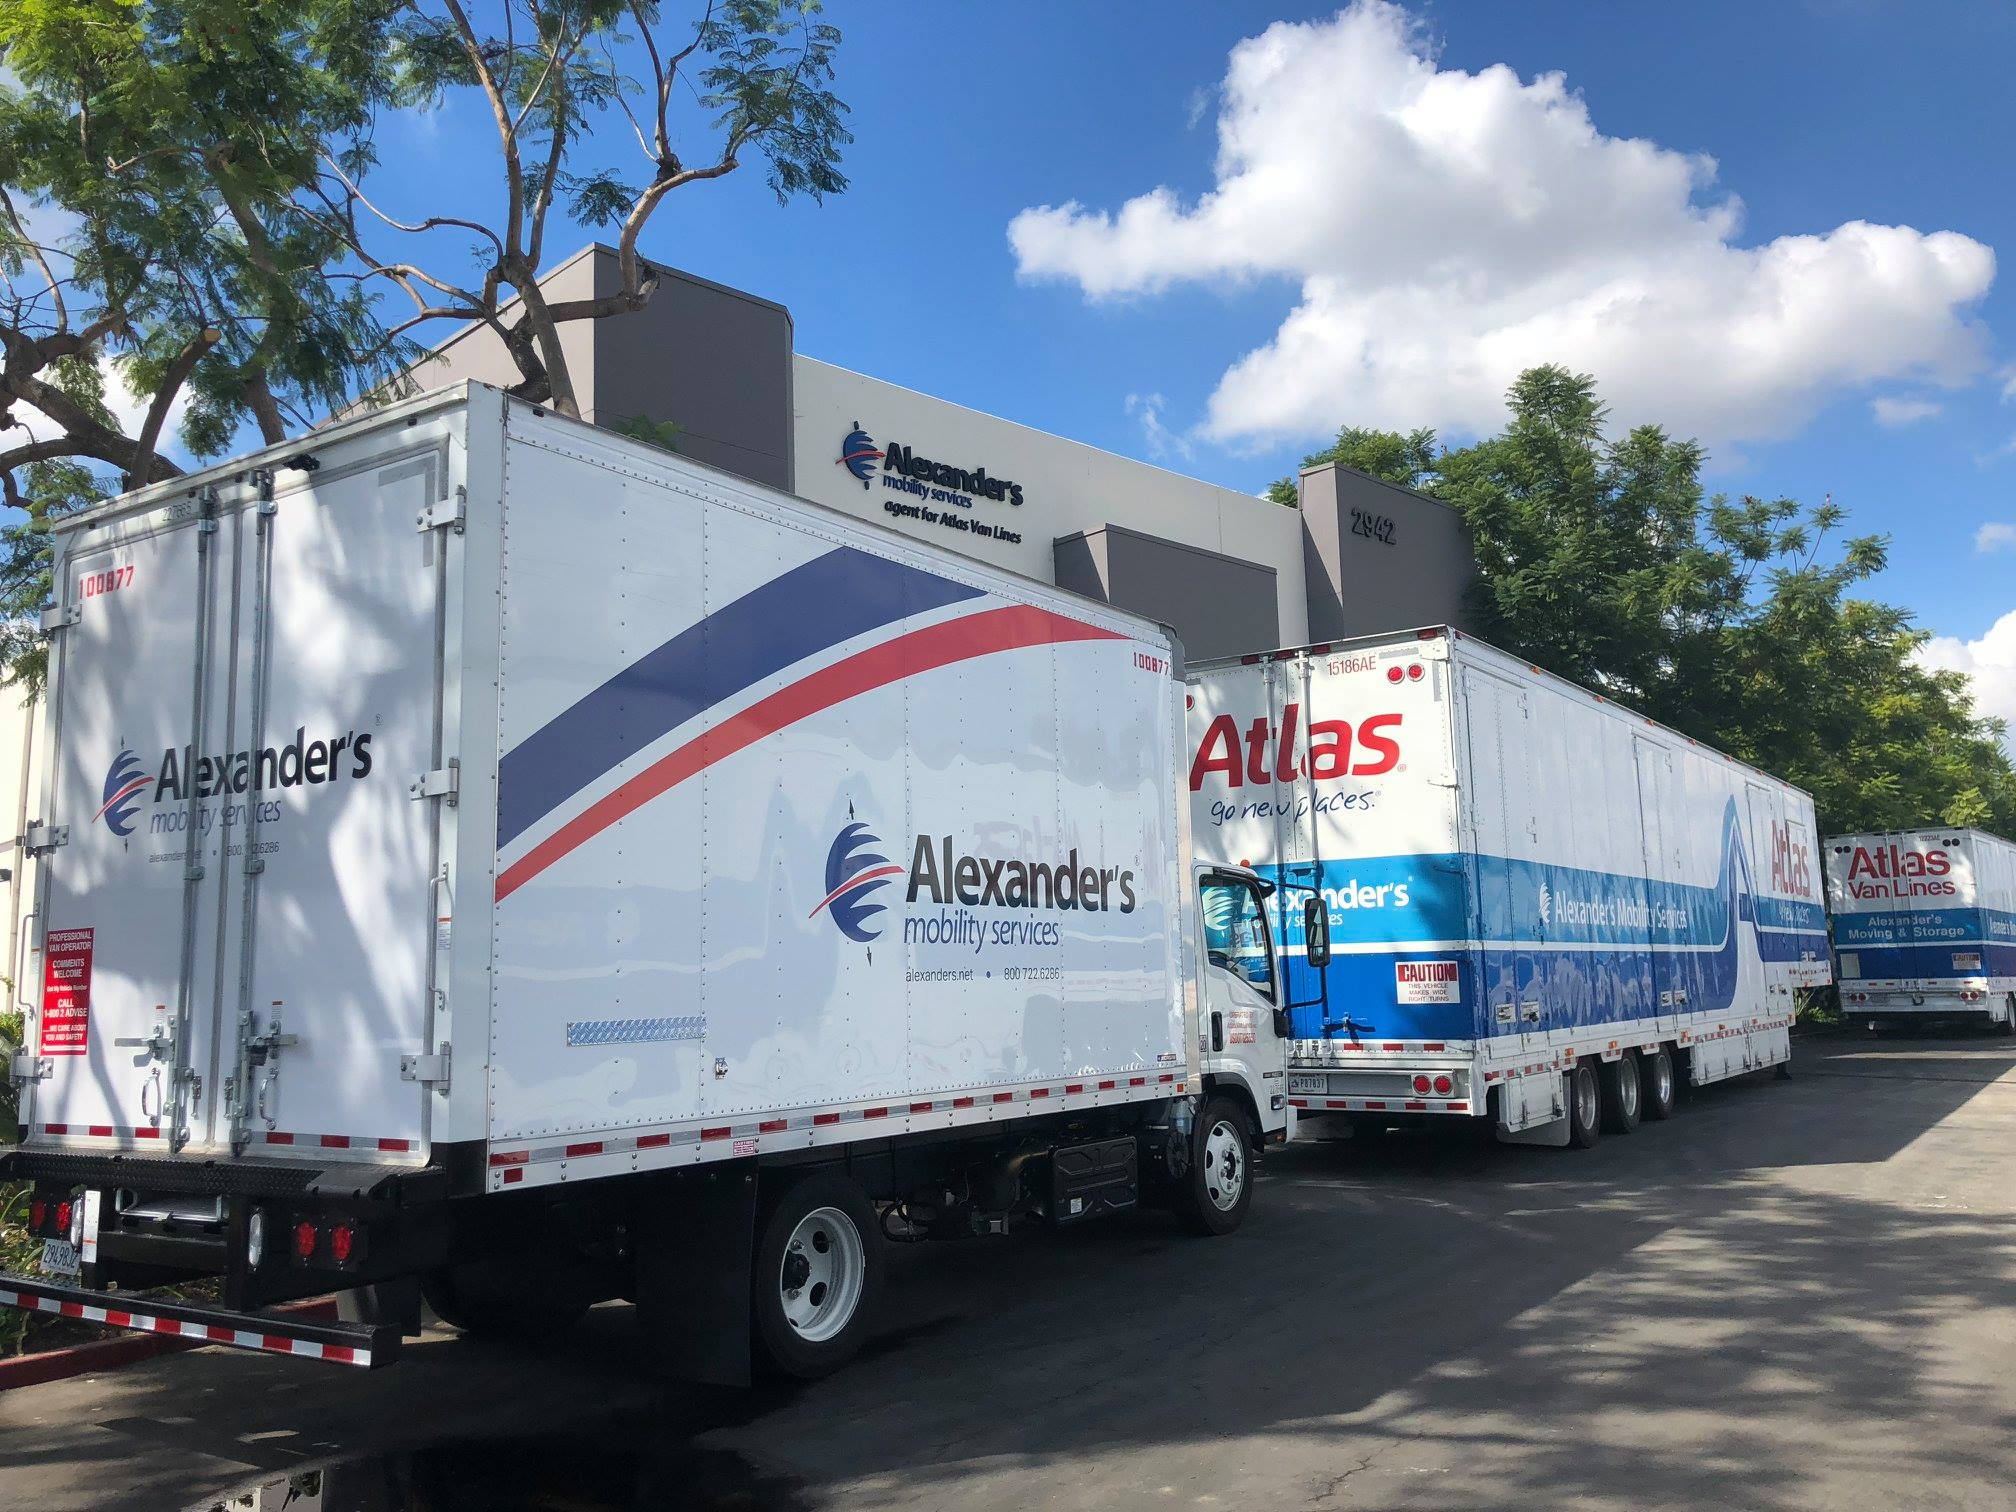 Alexander's Moving Services Trucks